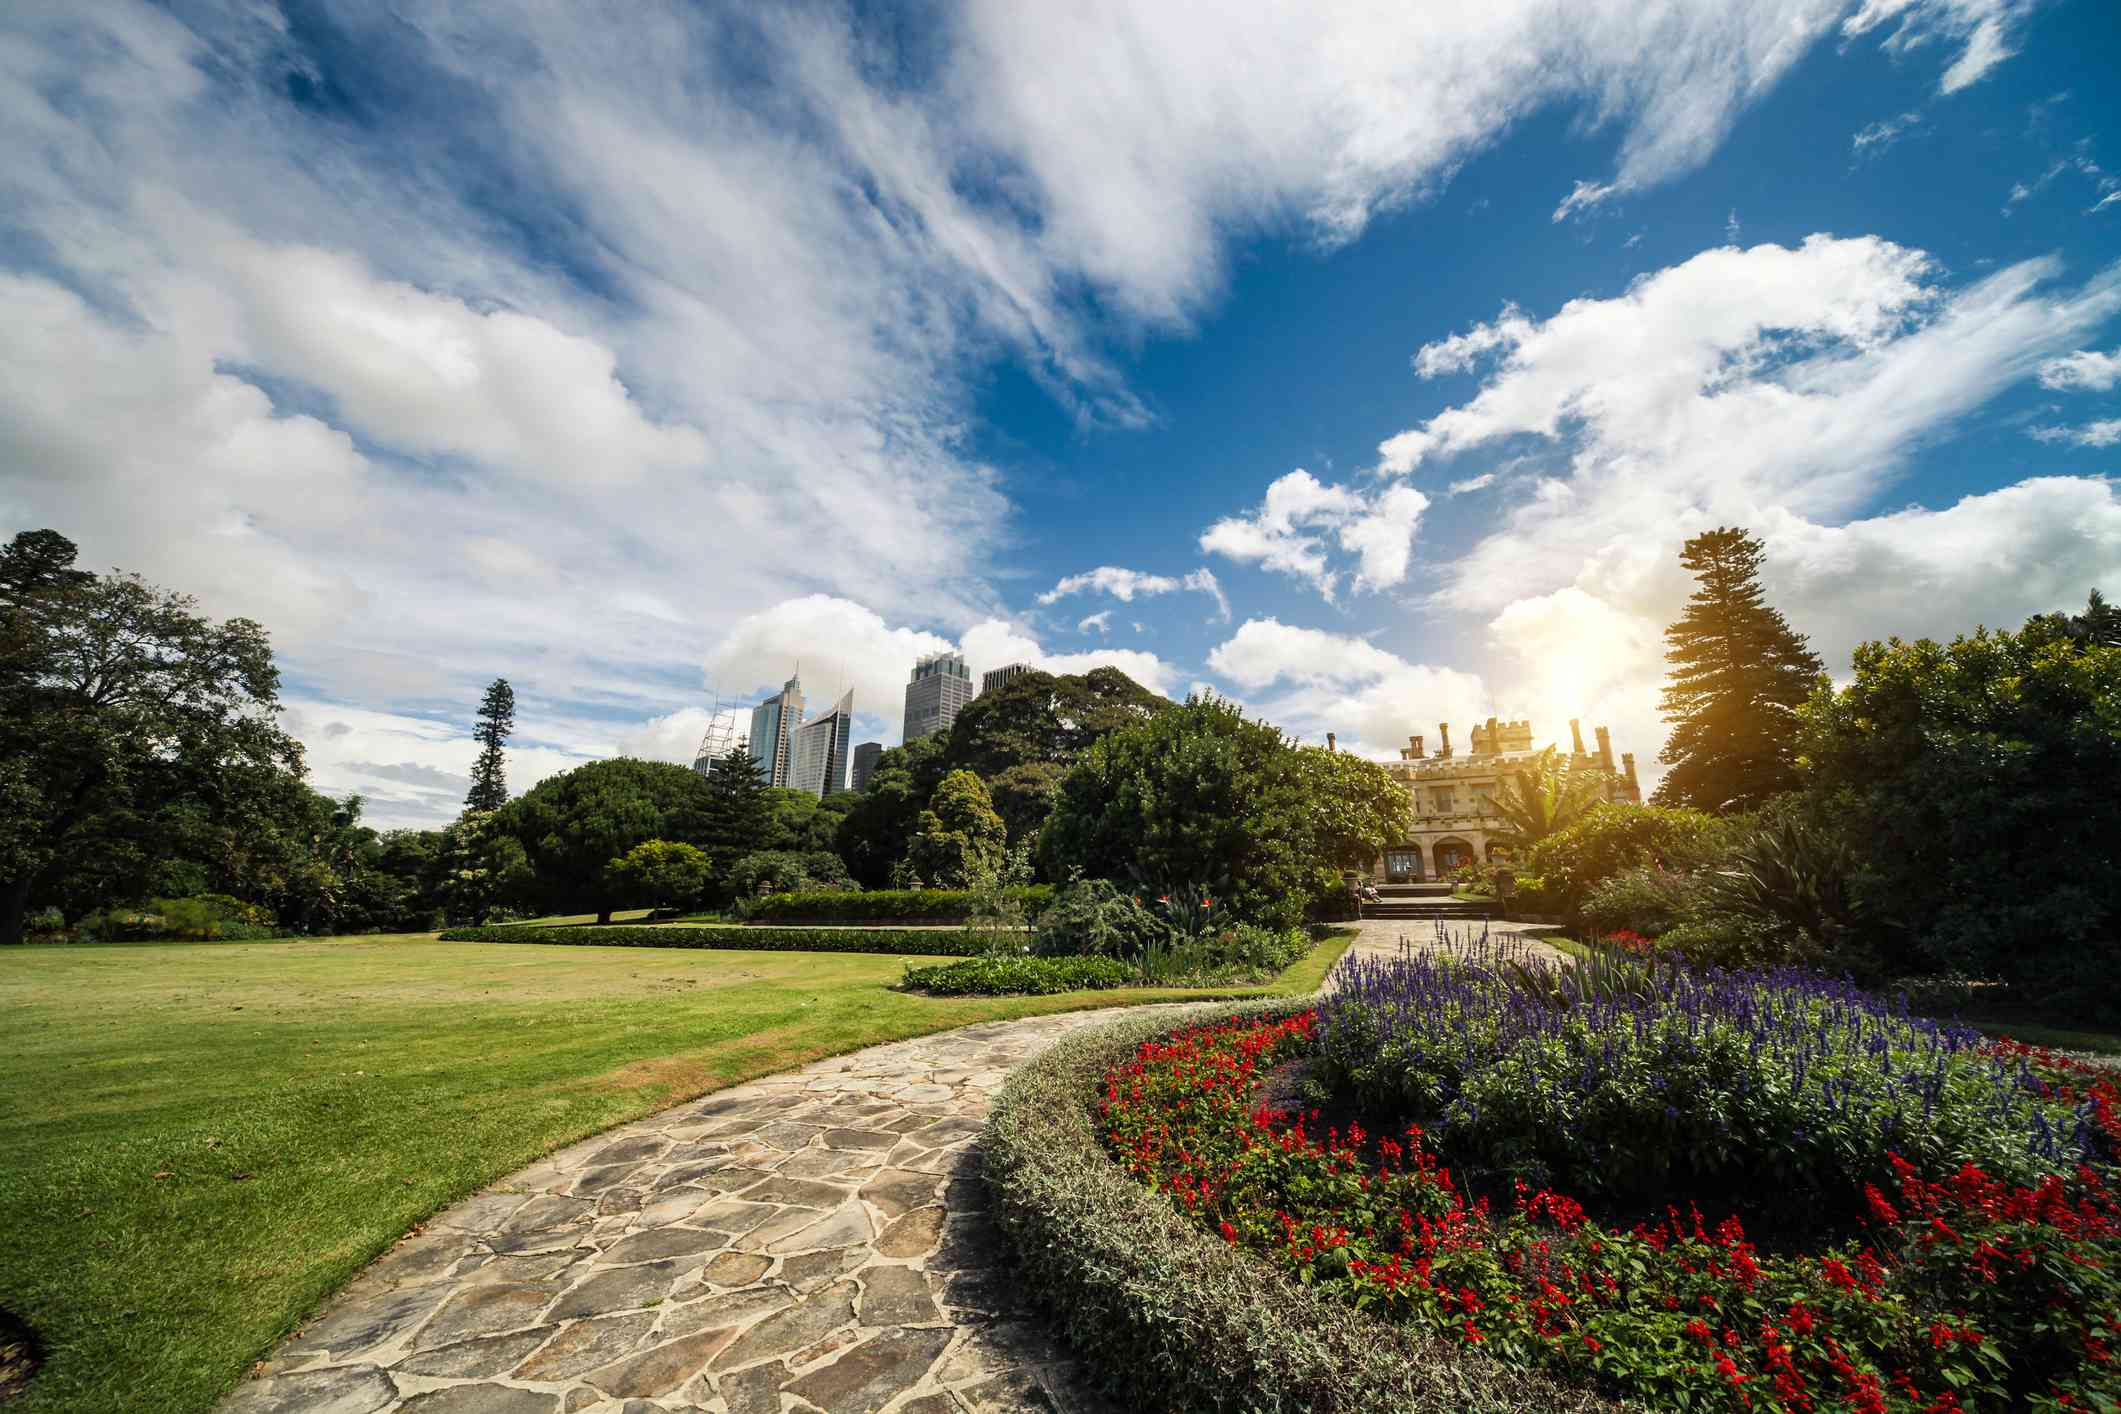 Gardens with city skyline in the background